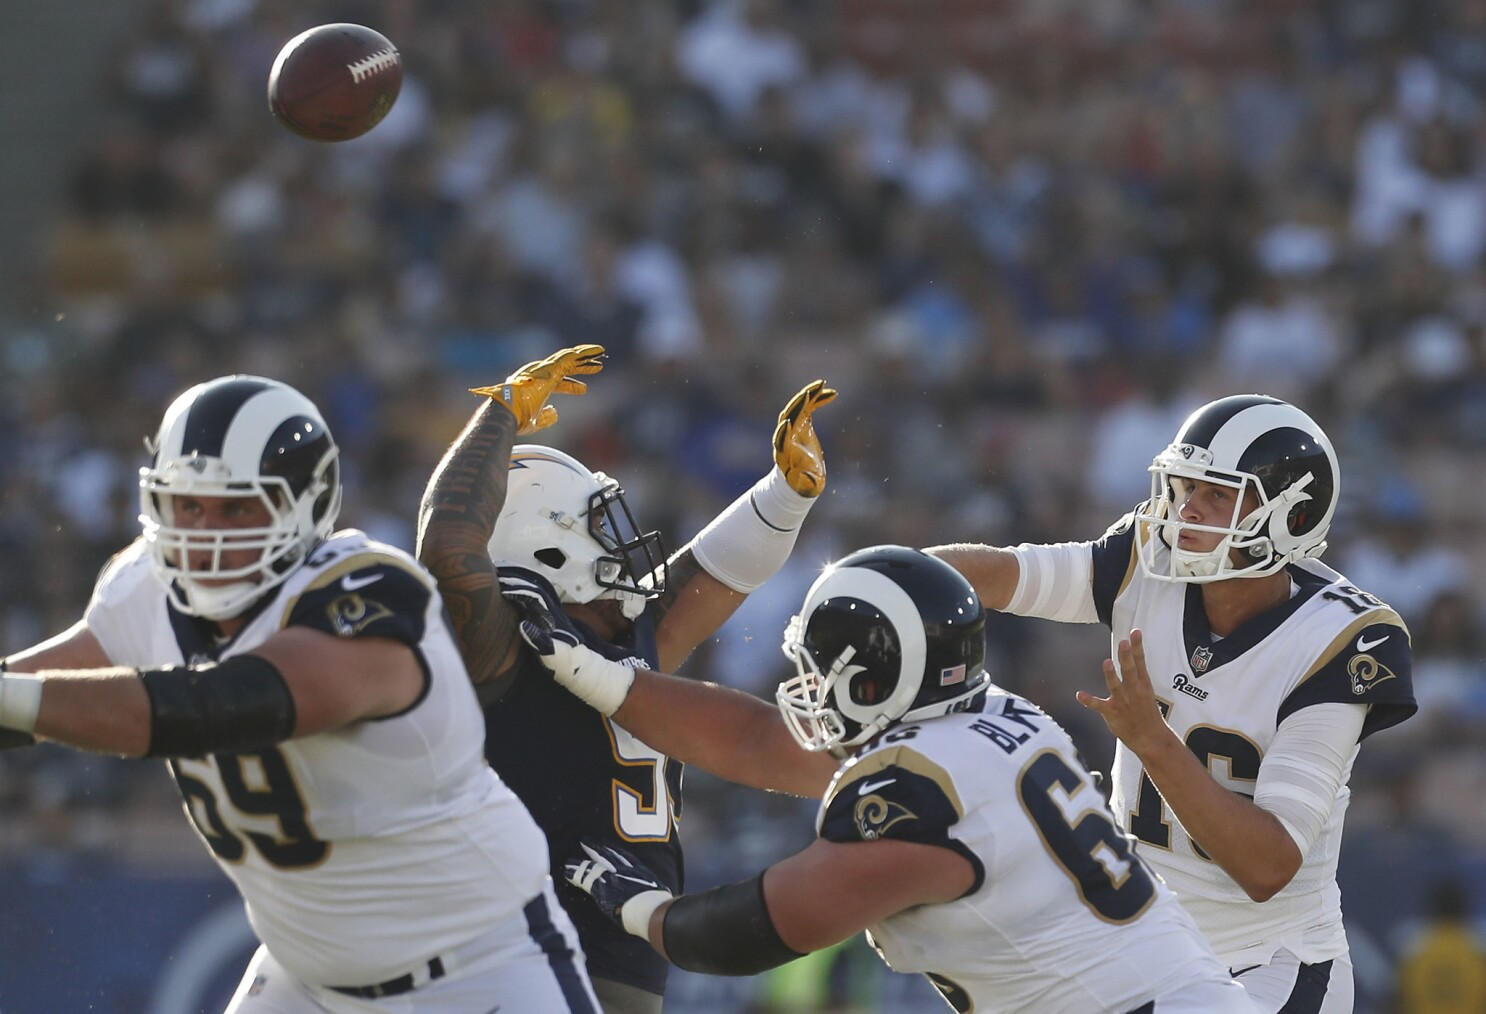 Rams 2018 Home Schedule Includes The Eagles Vikings Packers Chiefs And Chargers Los Angeles Times